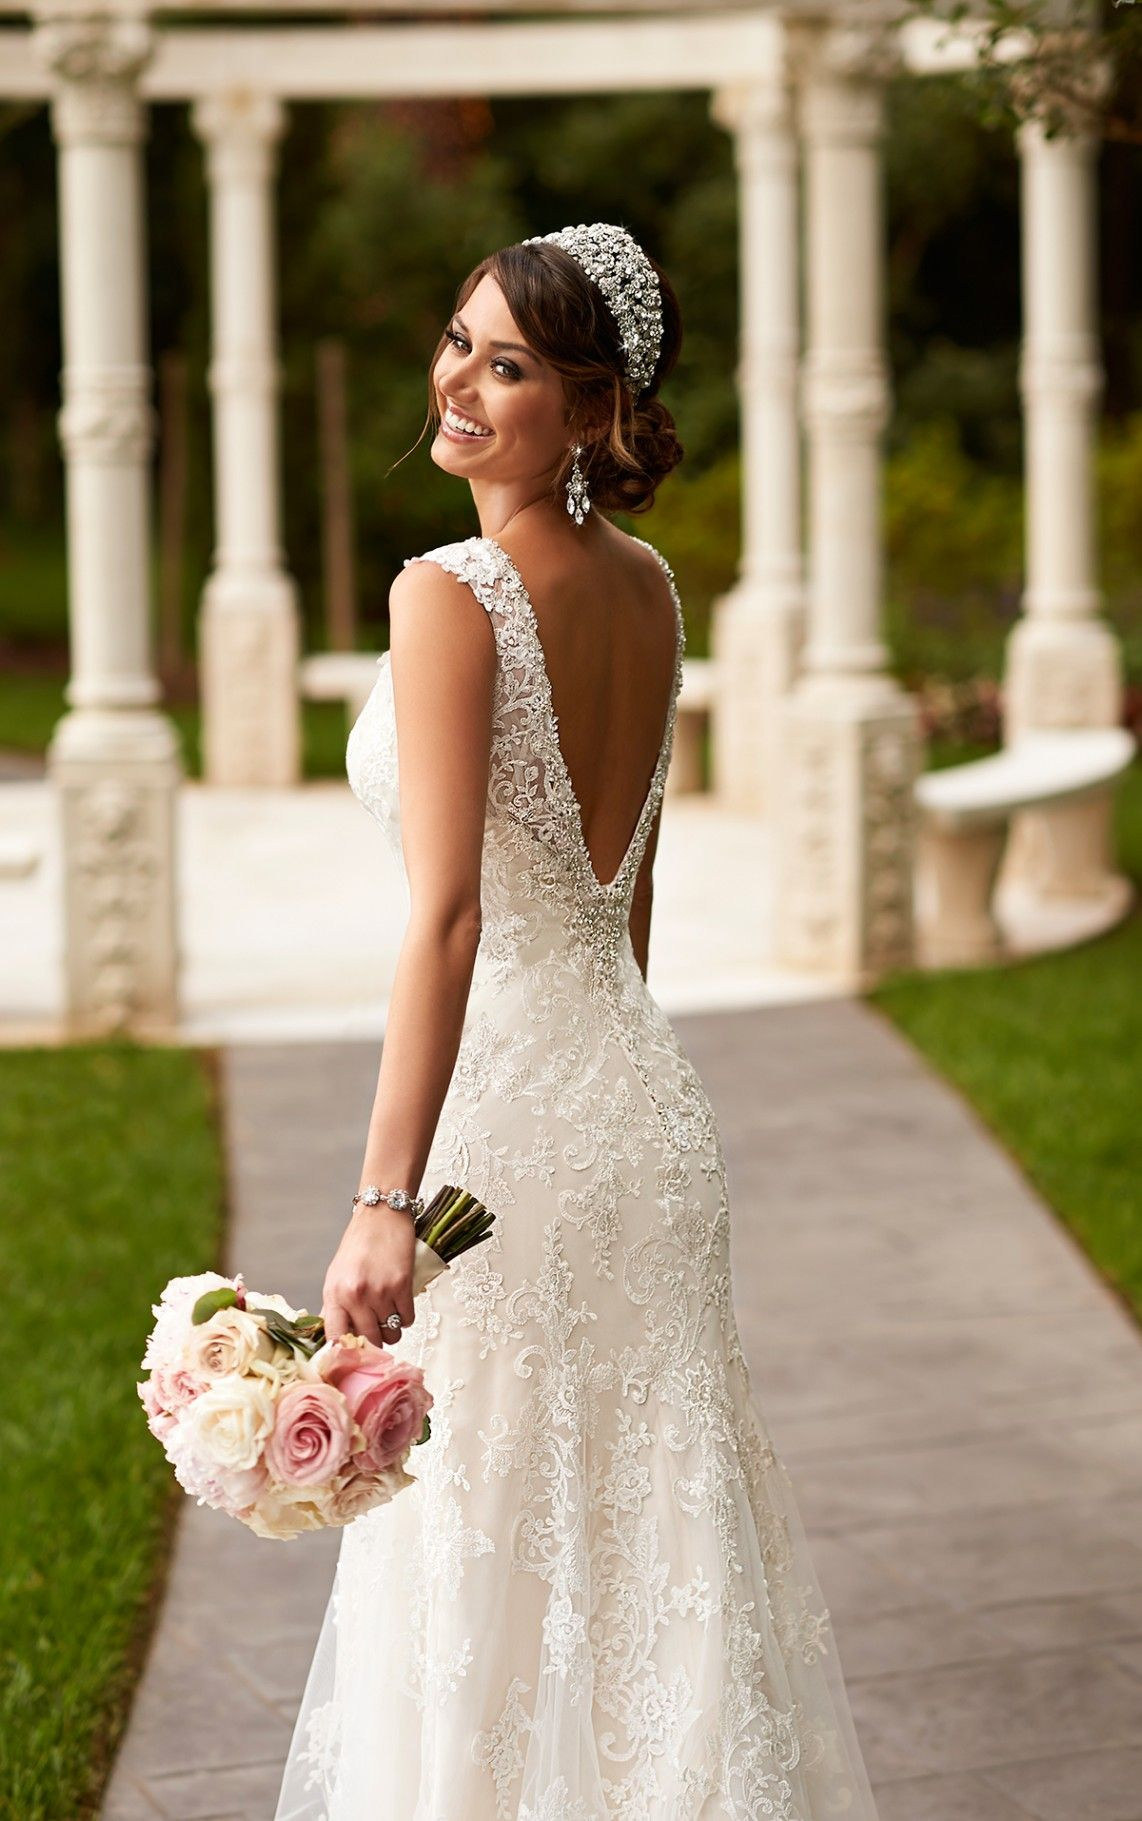 Dramatic wedding dresses  Stella York Wedding Dresses   Stella york Bridal collection